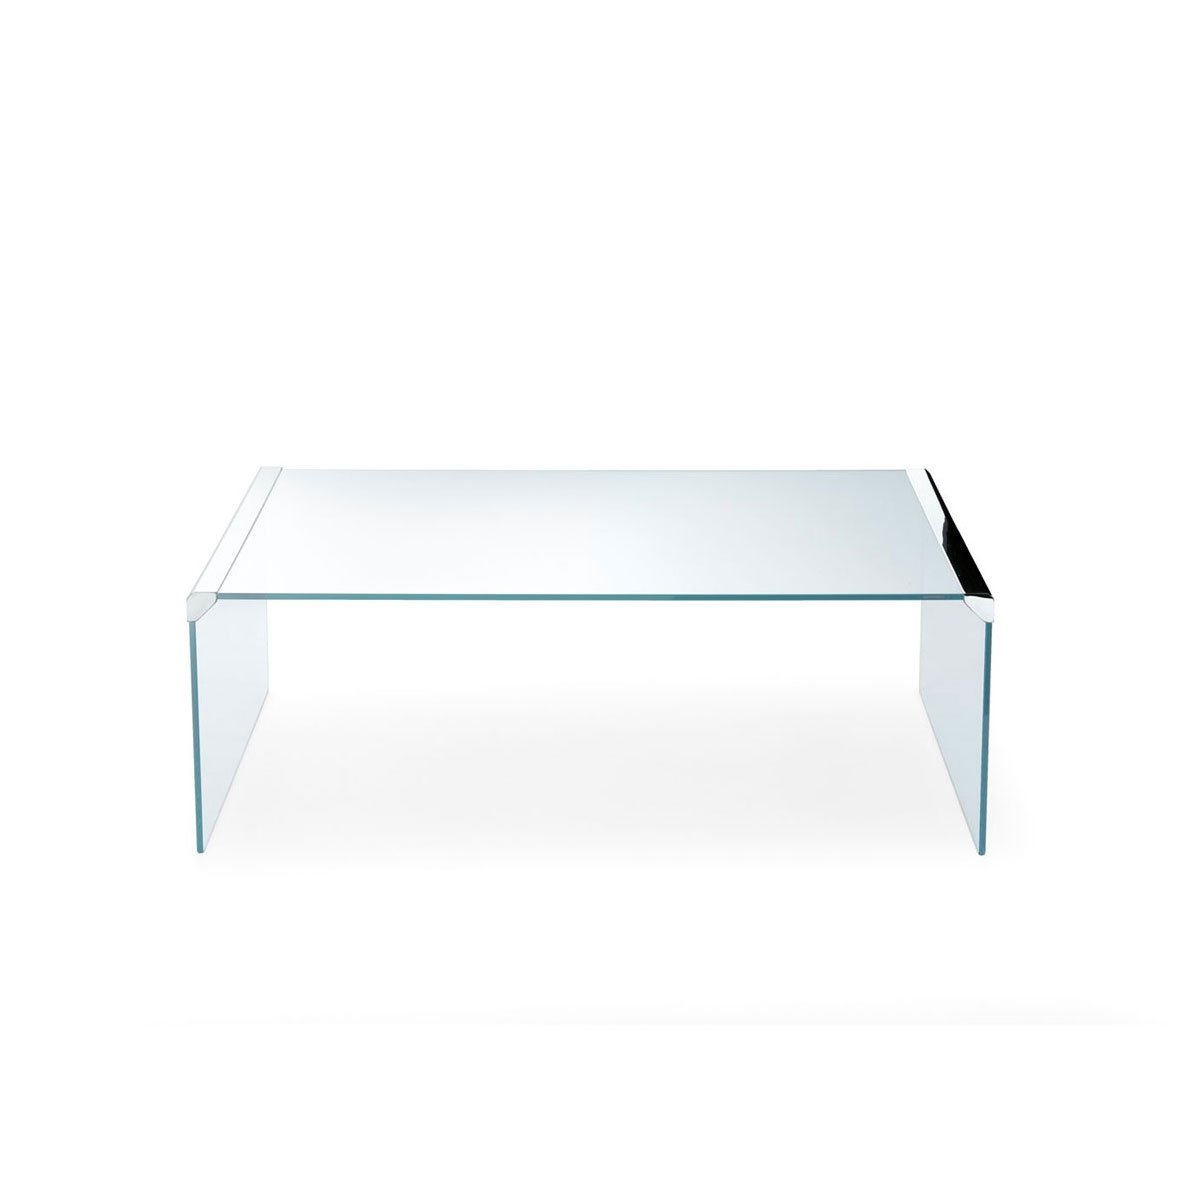 T33 Glass And Metal Coffee Table By Gallotti Radice Klarity Glass Furniture